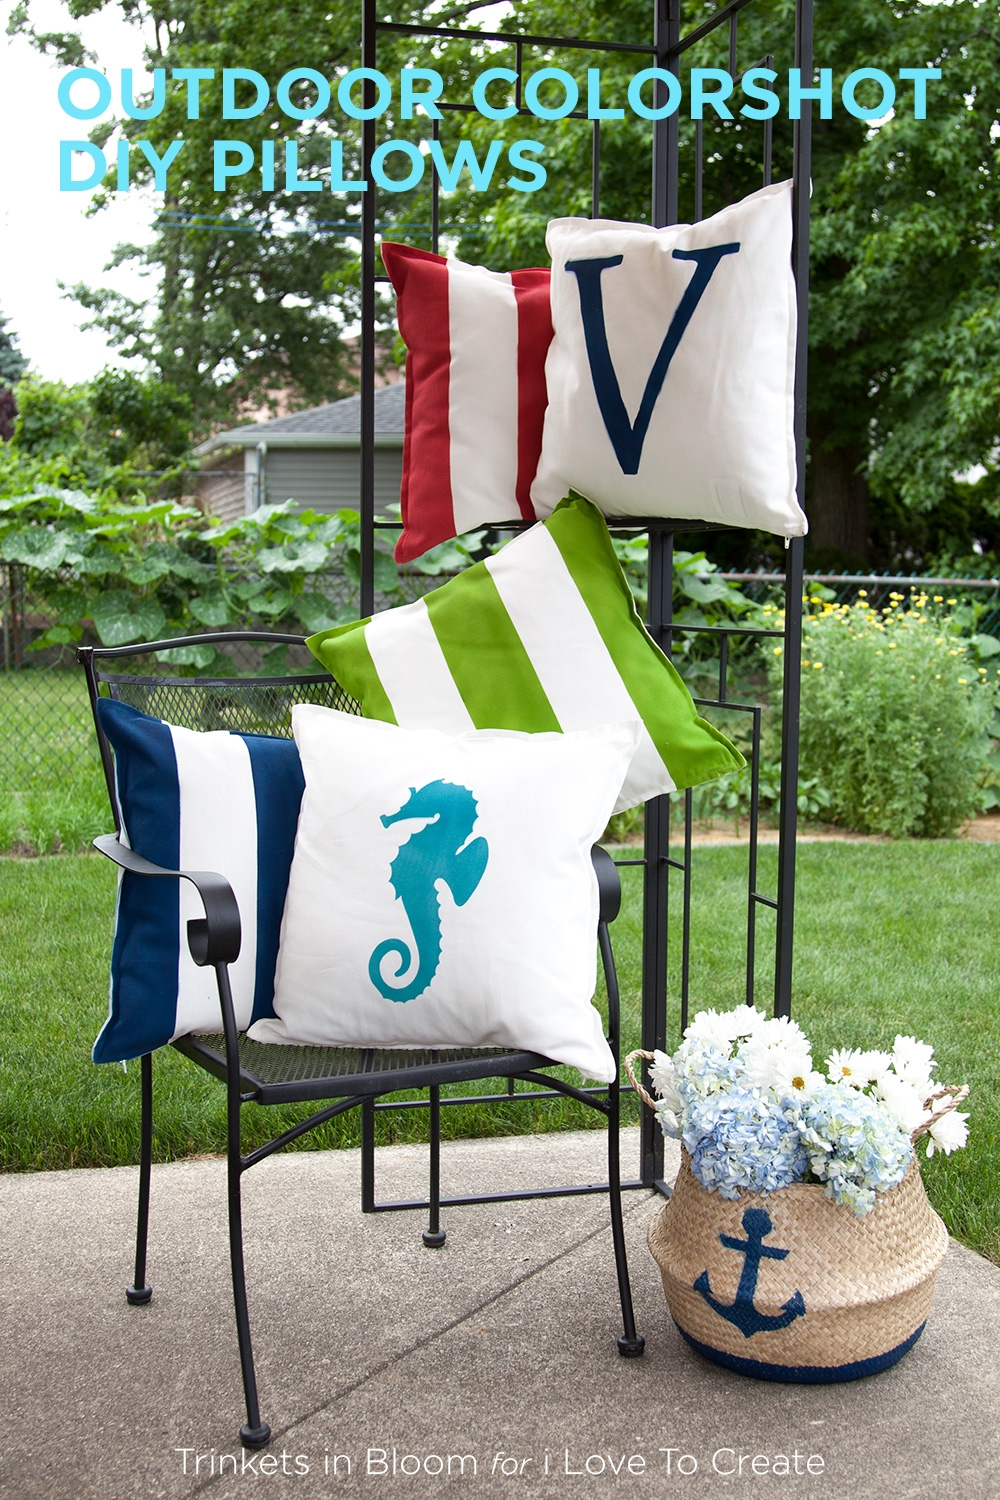 Picture of Outdoor ColorShot DIY Pillows